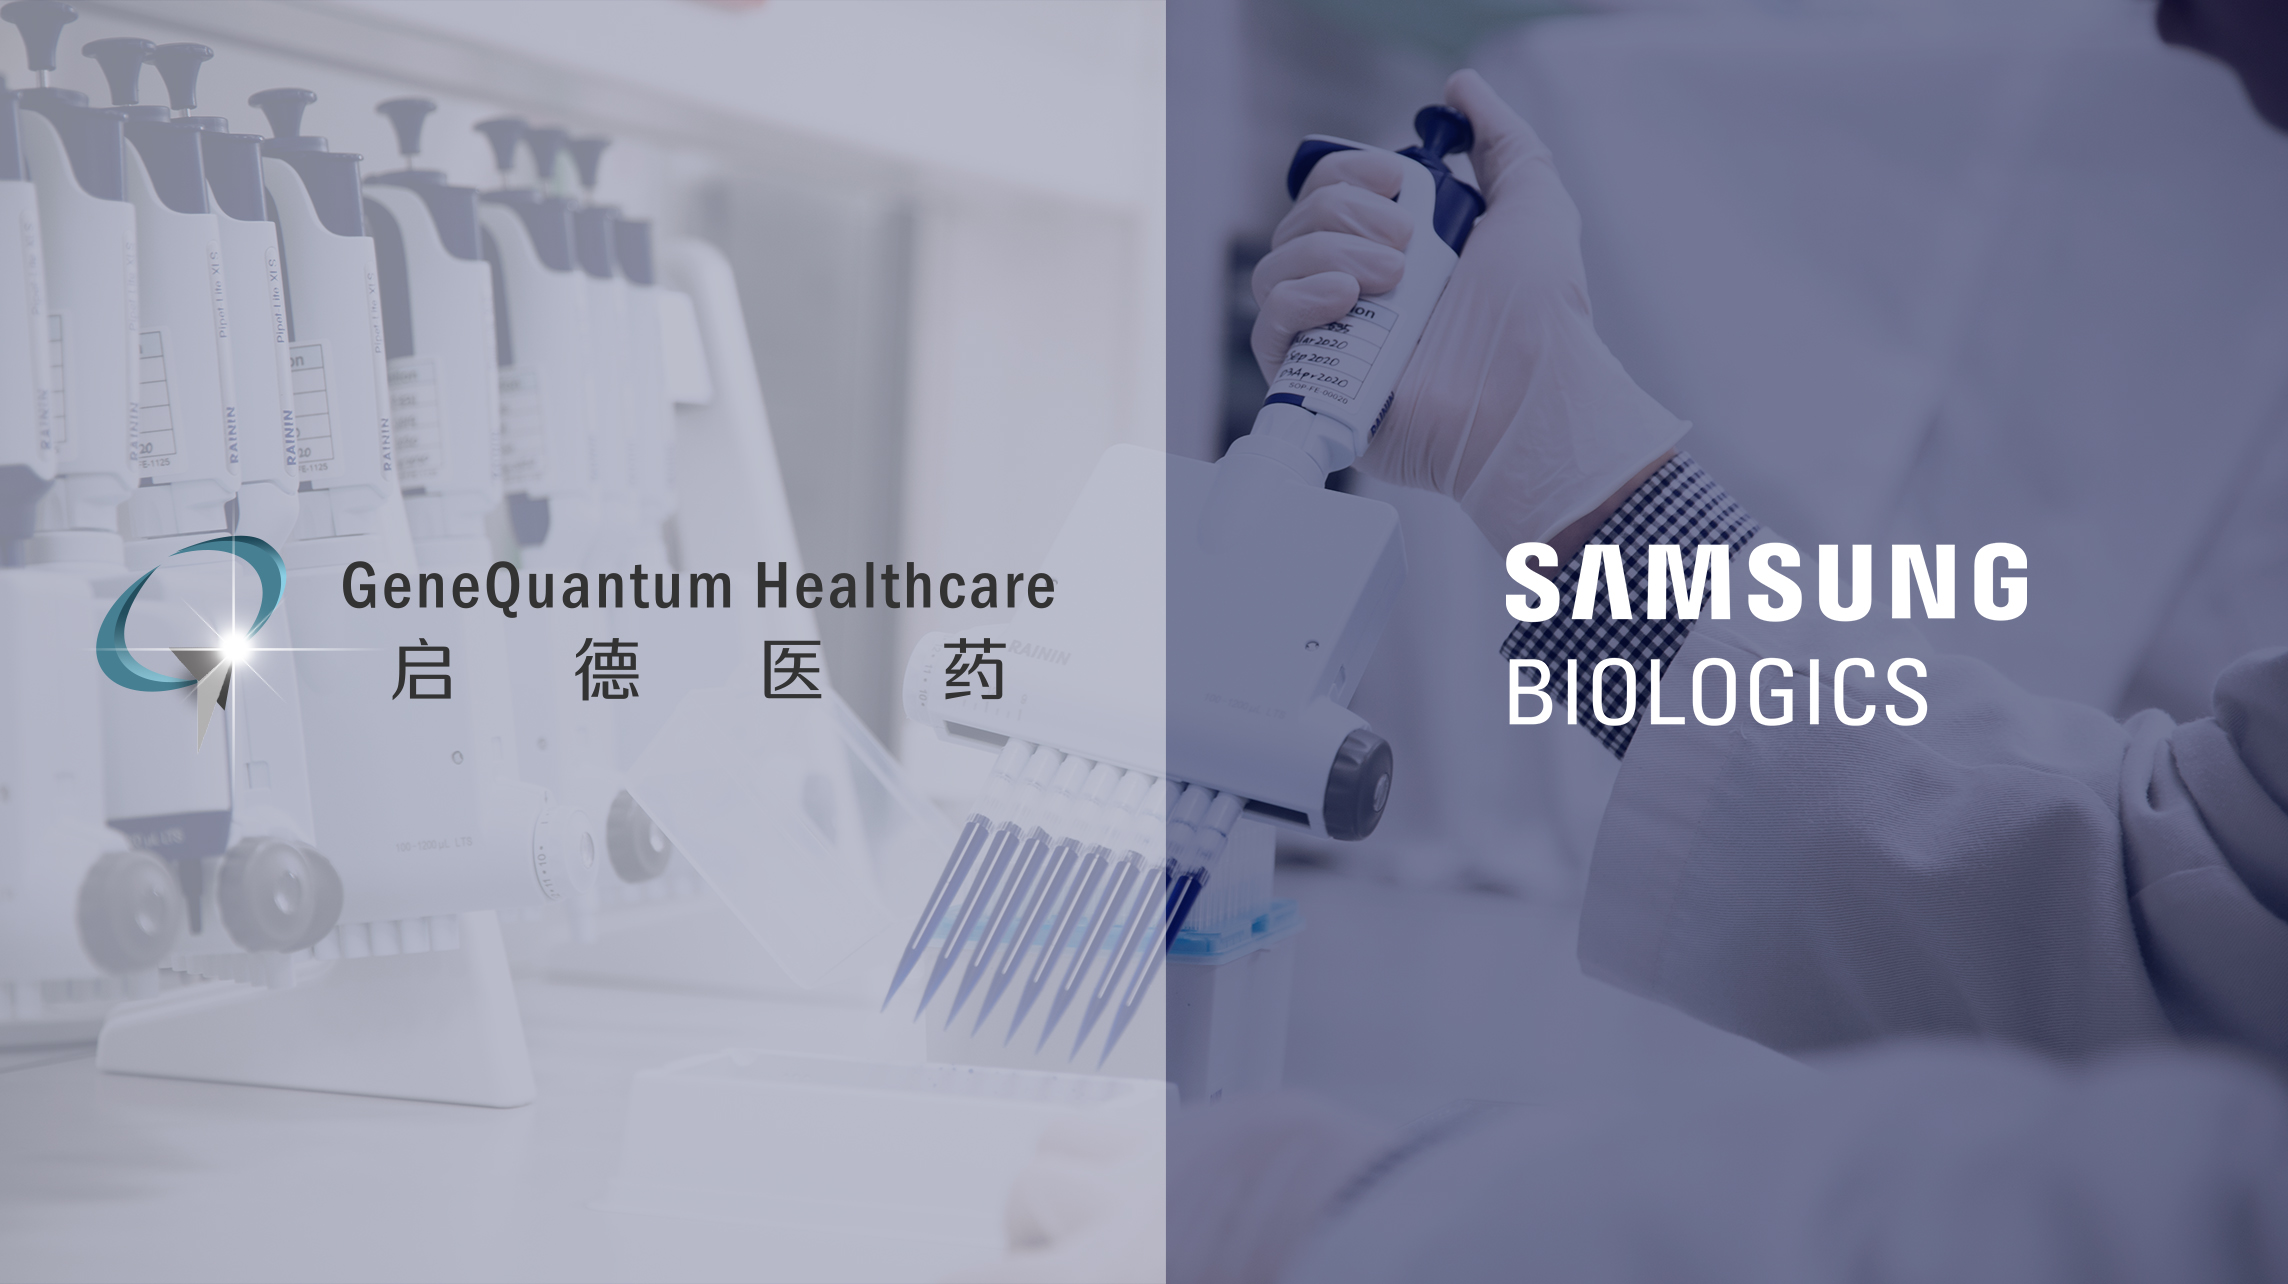 Samsung Biologics Establishes Partnership with China Biotech GeneQuantum Healthcare to Collaborate on ADC Development